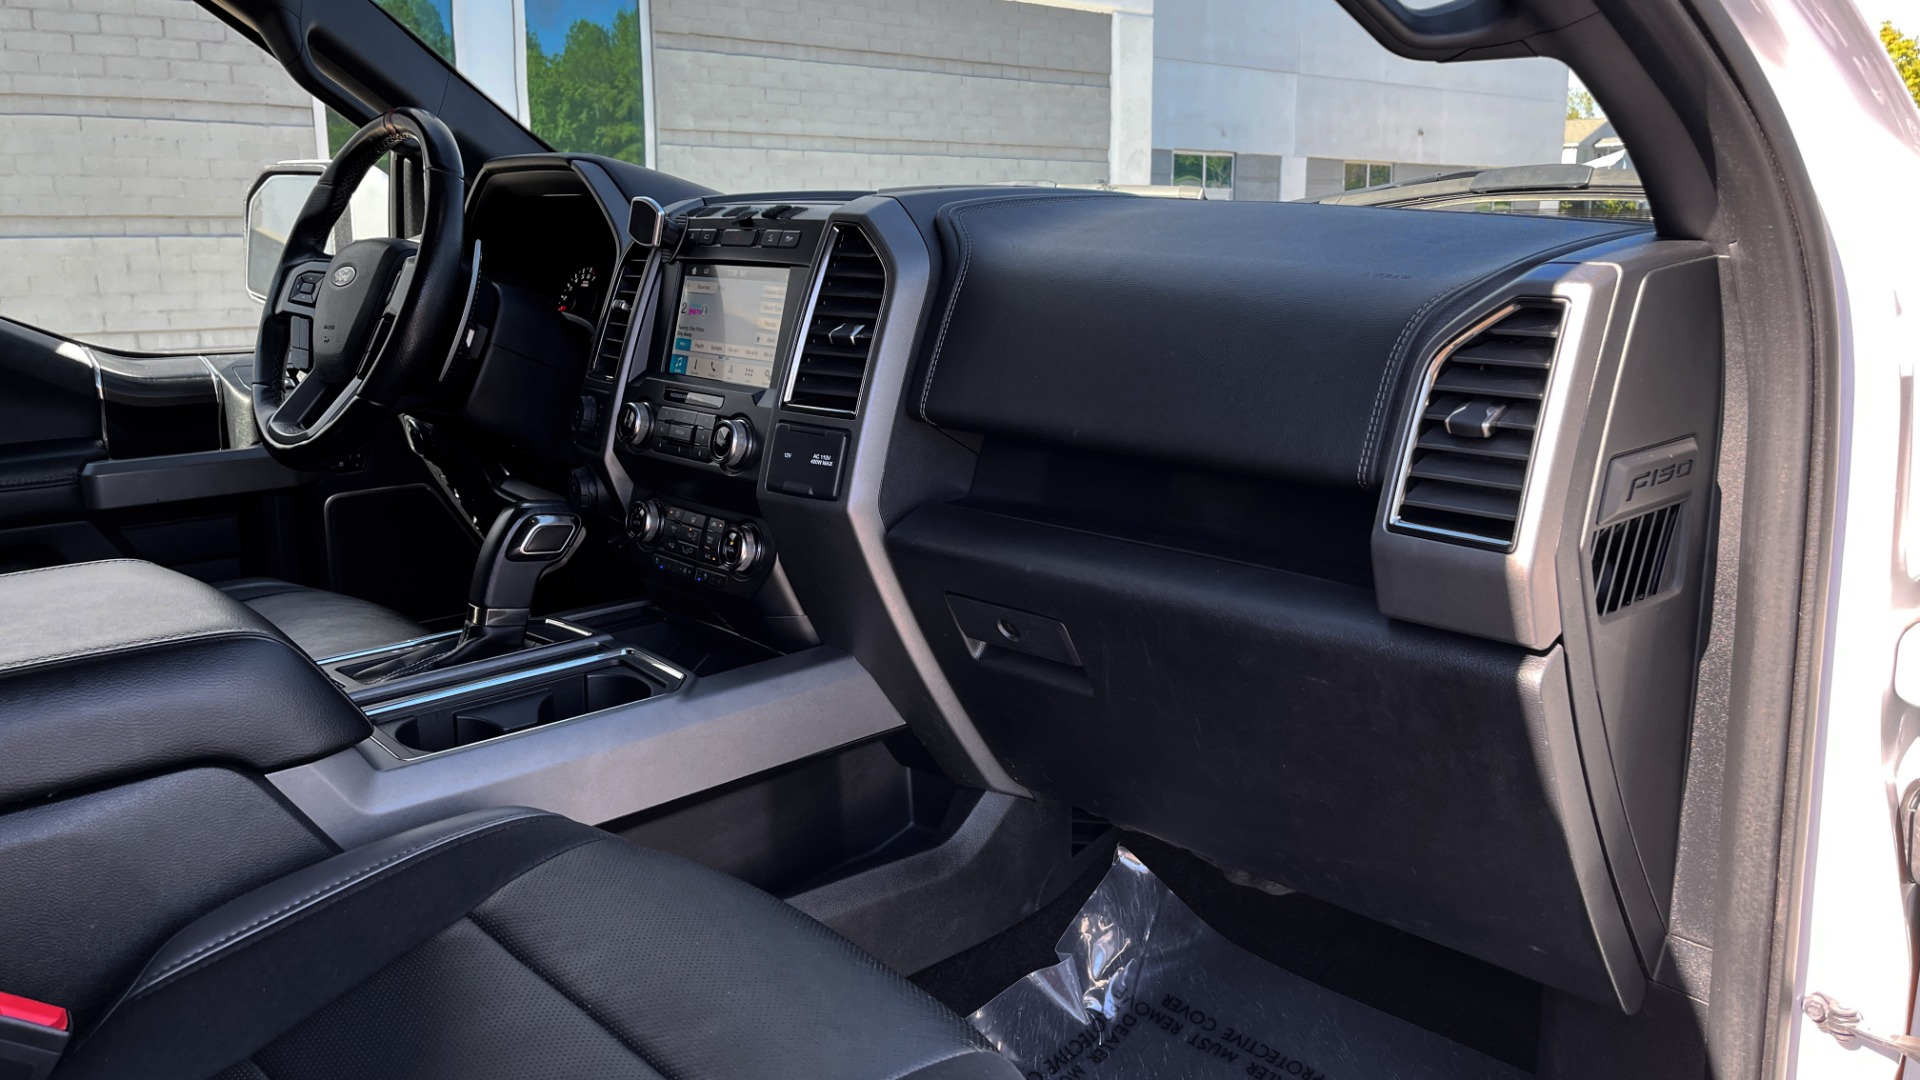 Used 2019 Ford F-150 RAPTOR 4X4 SUPERCREW / NAV / BLIS / B&O SND / REMOTE START / REARVIEW for sale $65,999 at Formula Imports in Charlotte NC 28227 69